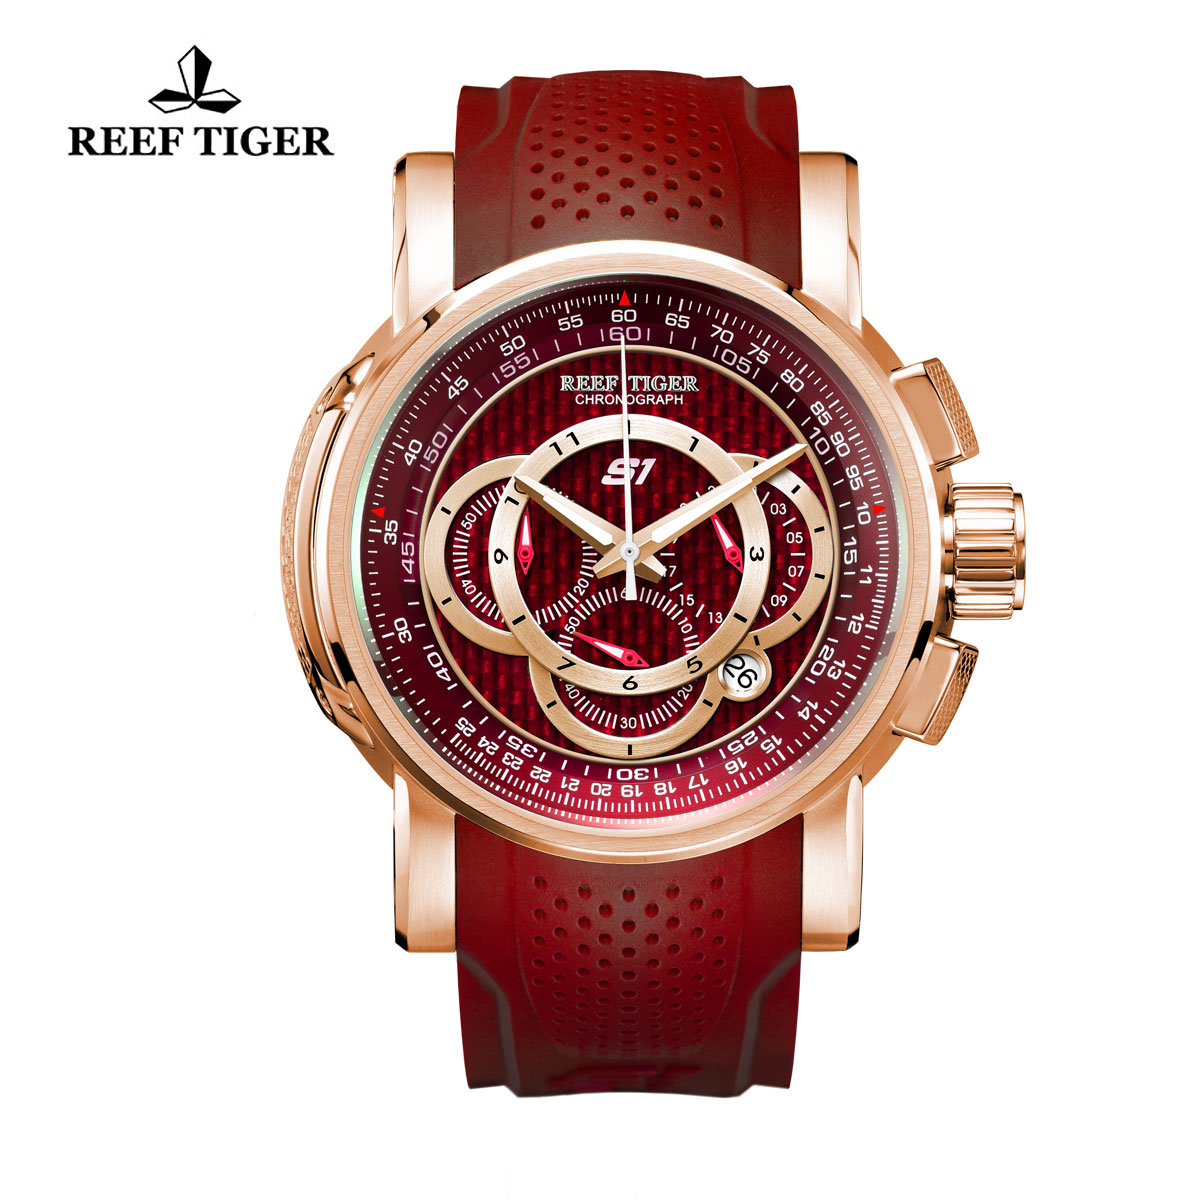 Reef Tiger Top Speed Sport Watches Chronograph Rose Gold Case Red Dial Rubber Strap Watches RGA3063-PRR